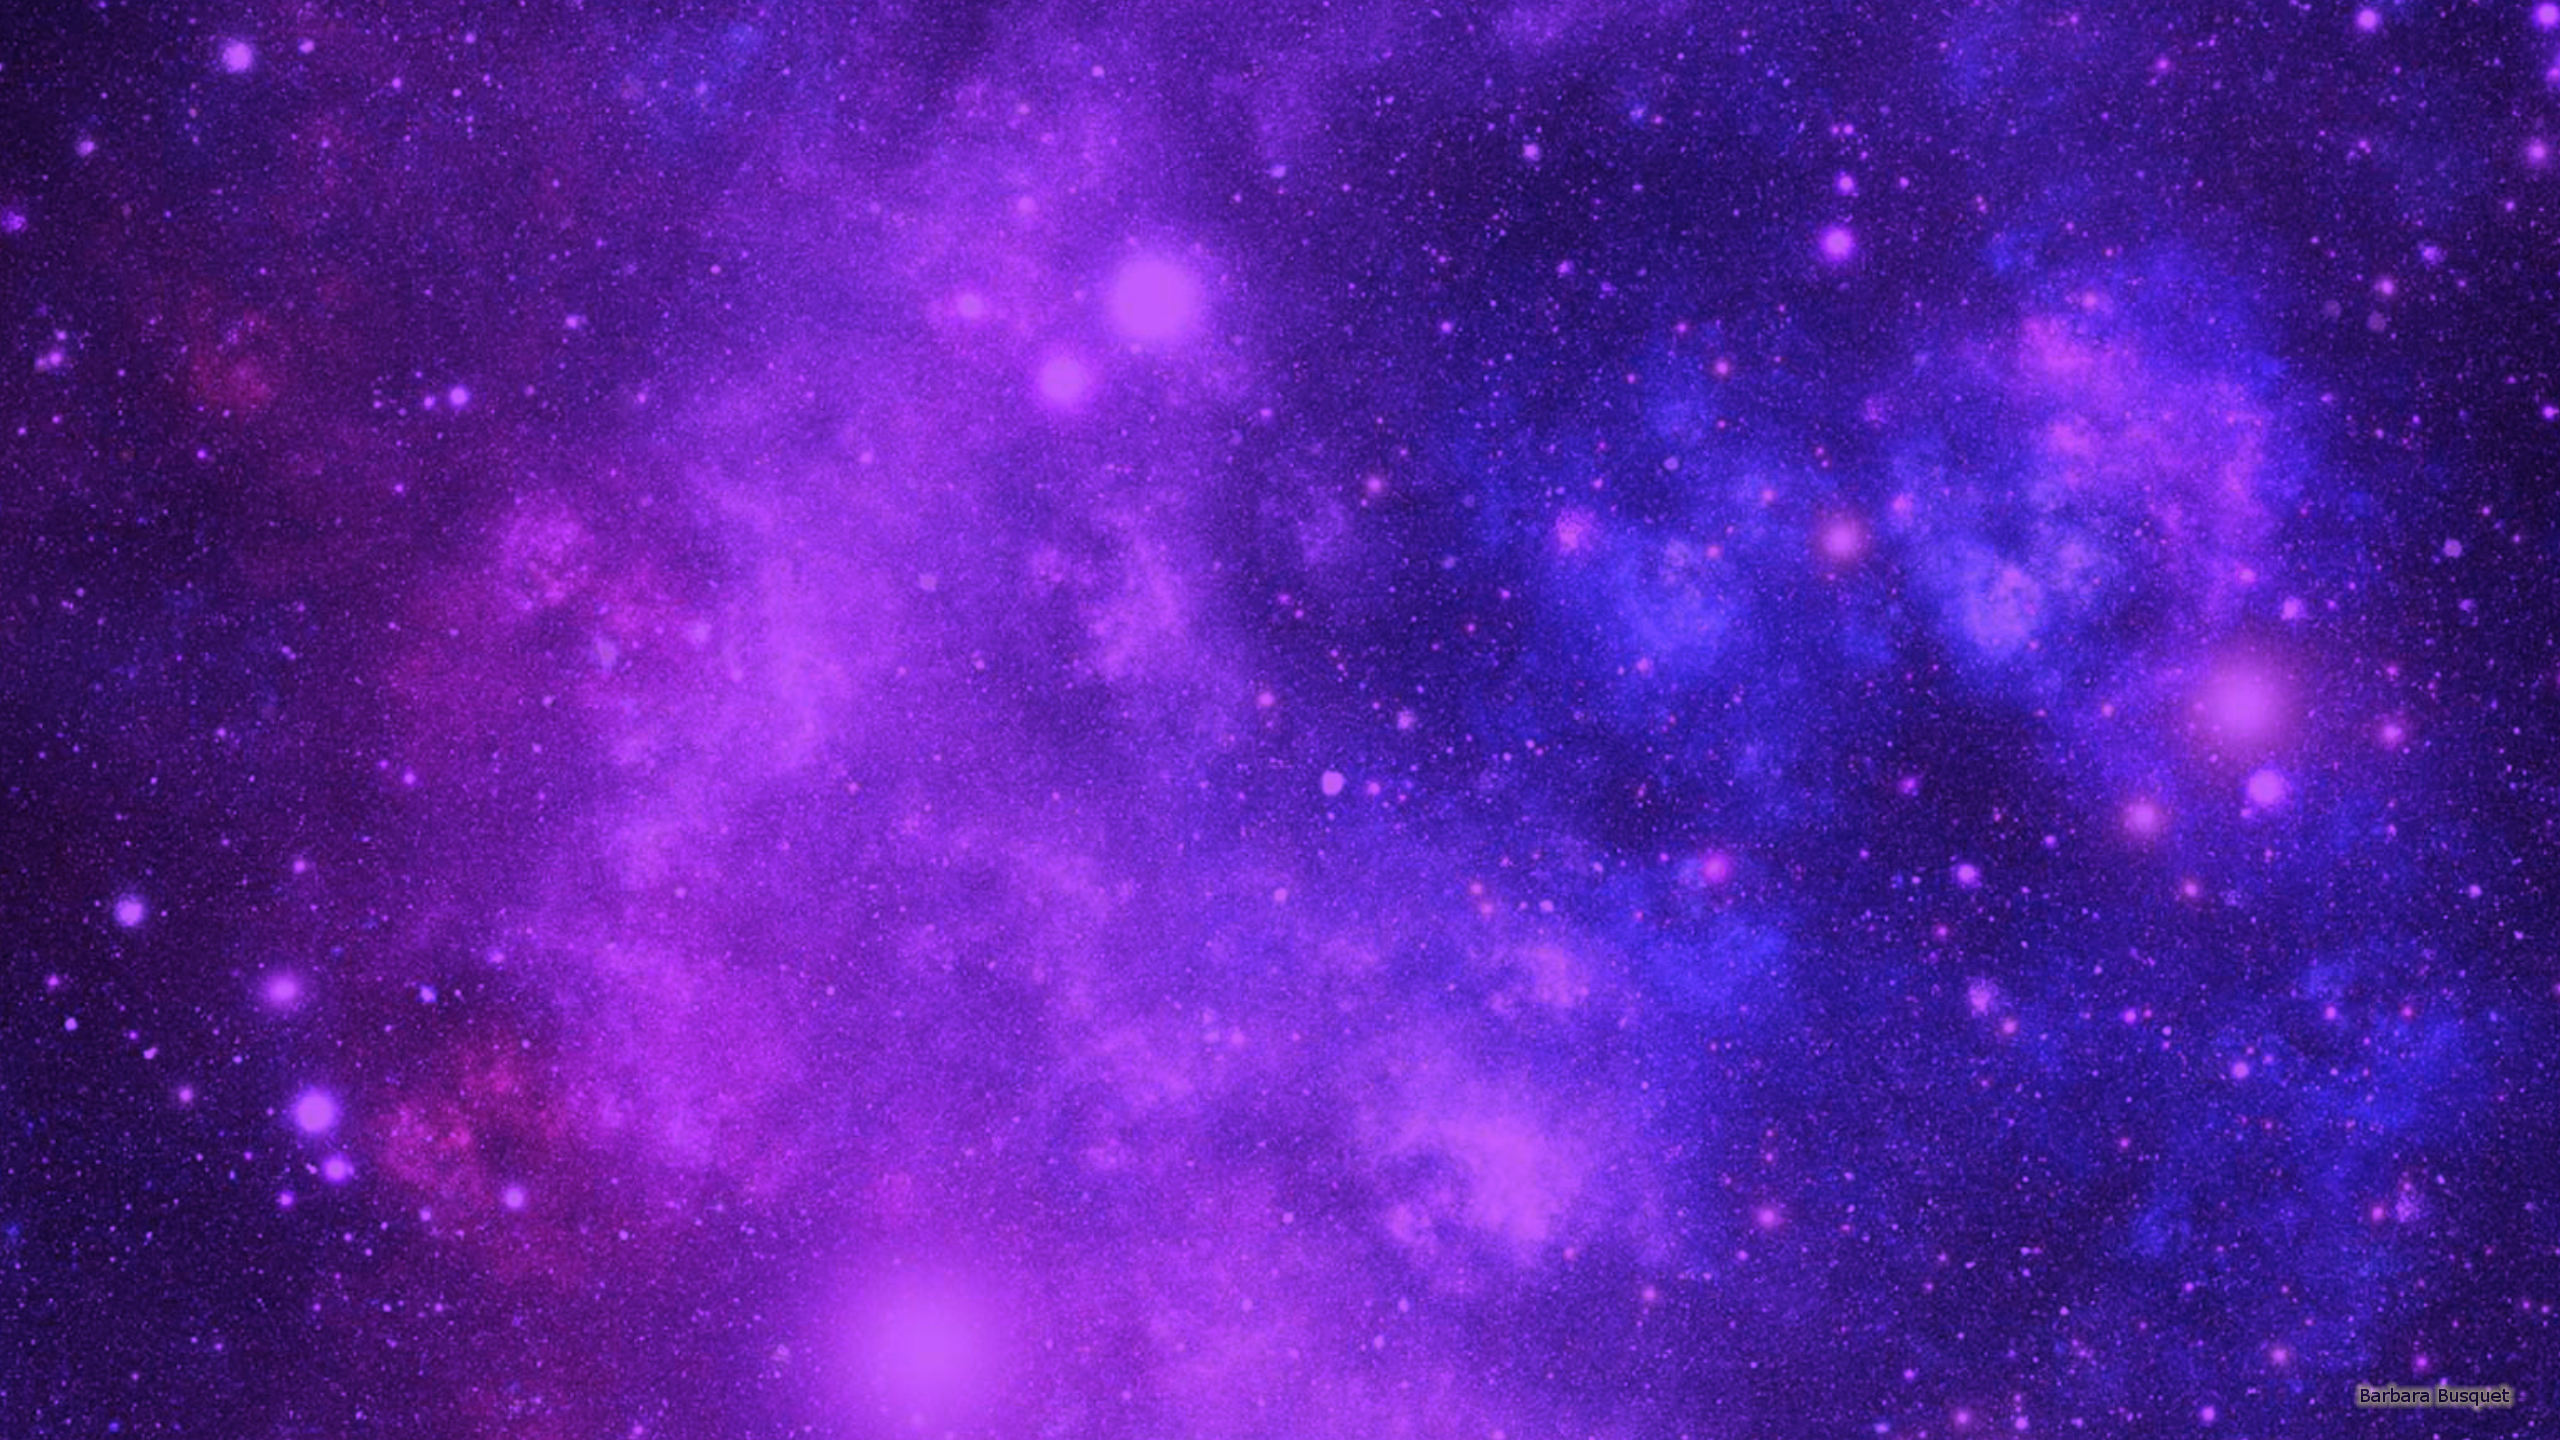 galaxy wallpaper blue and pink